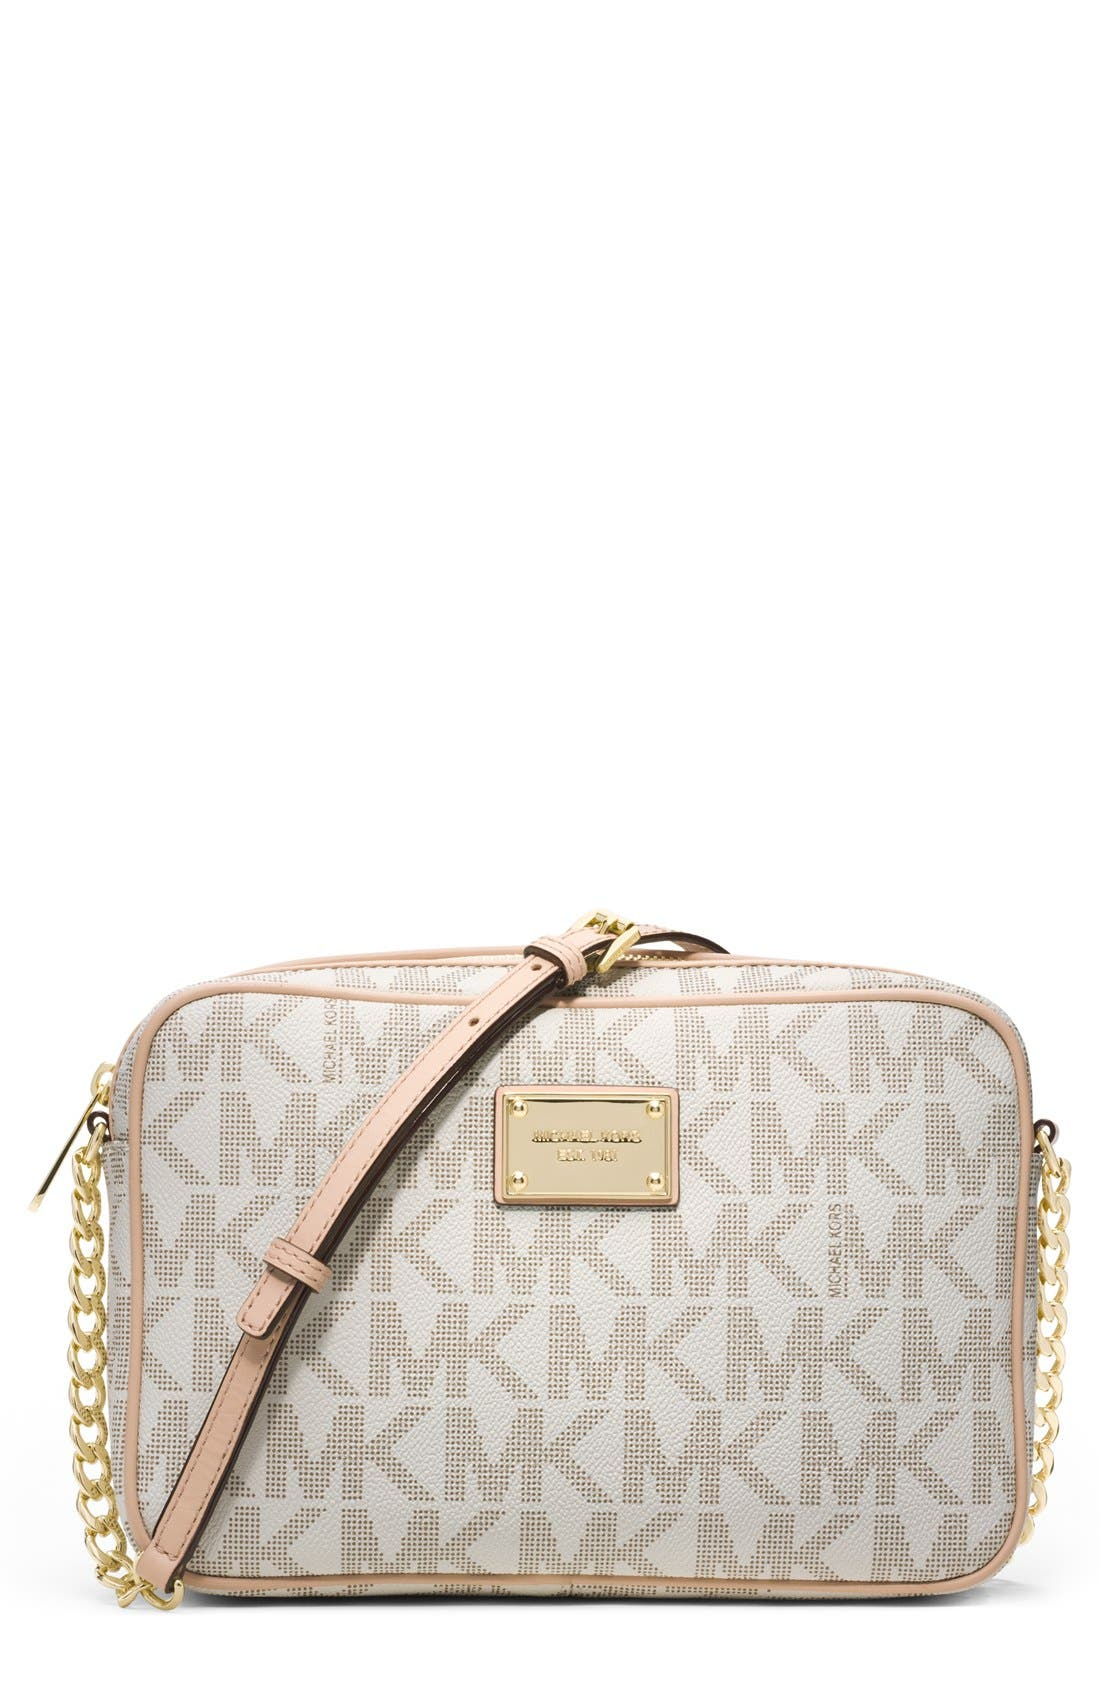 Alternate Image 1 Selected - MICHAEL Michael Kors 'Jet Set Large' East/West Crossbody